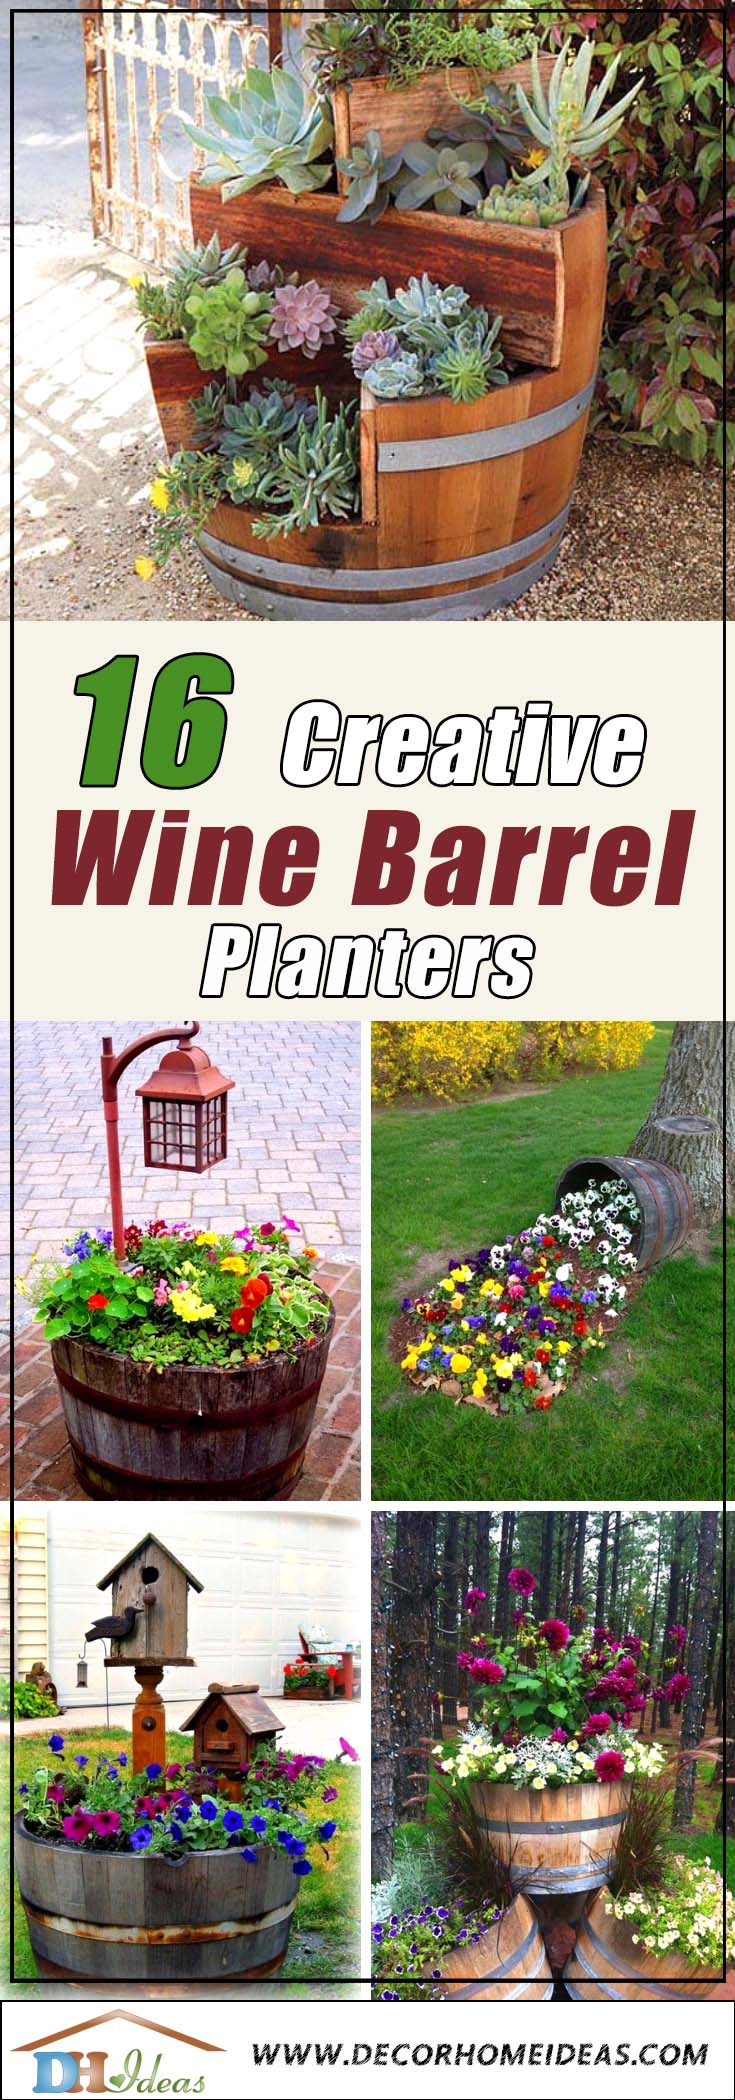 16 Easy To Make Affordable Wine Barrel Planters #diy #winebarrel #flowerplanter #repurpose #decorhomeideas